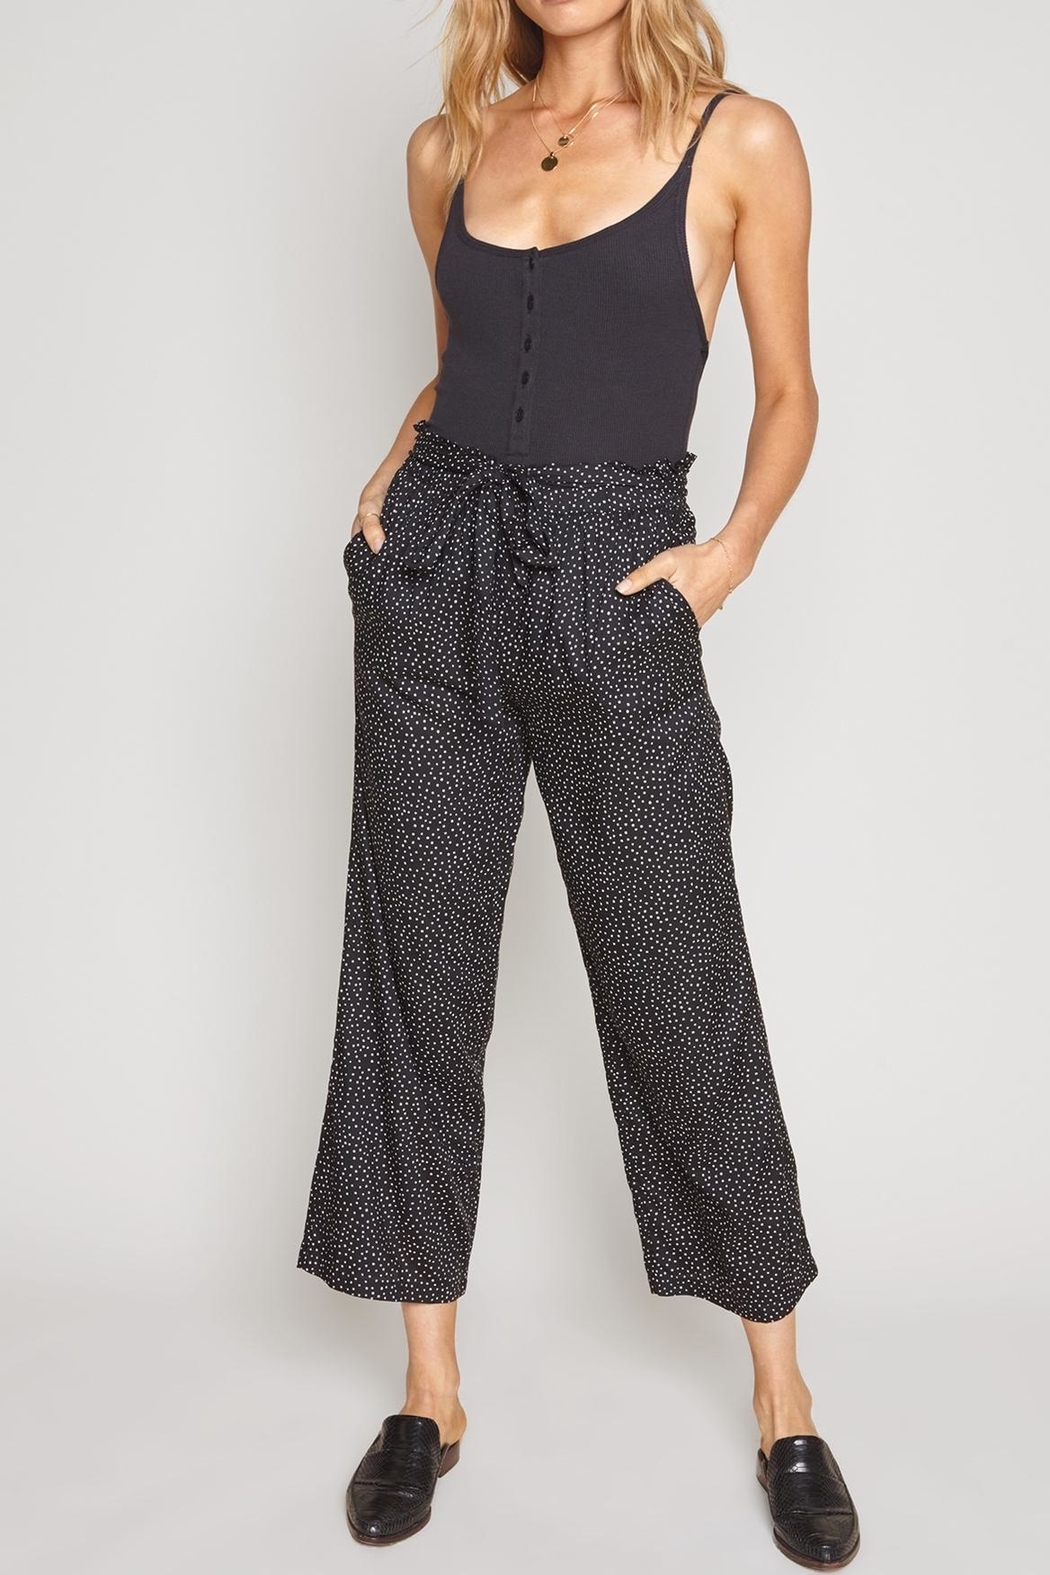 AMUSE SOCIETY Iver Pants - Front Cropped Image